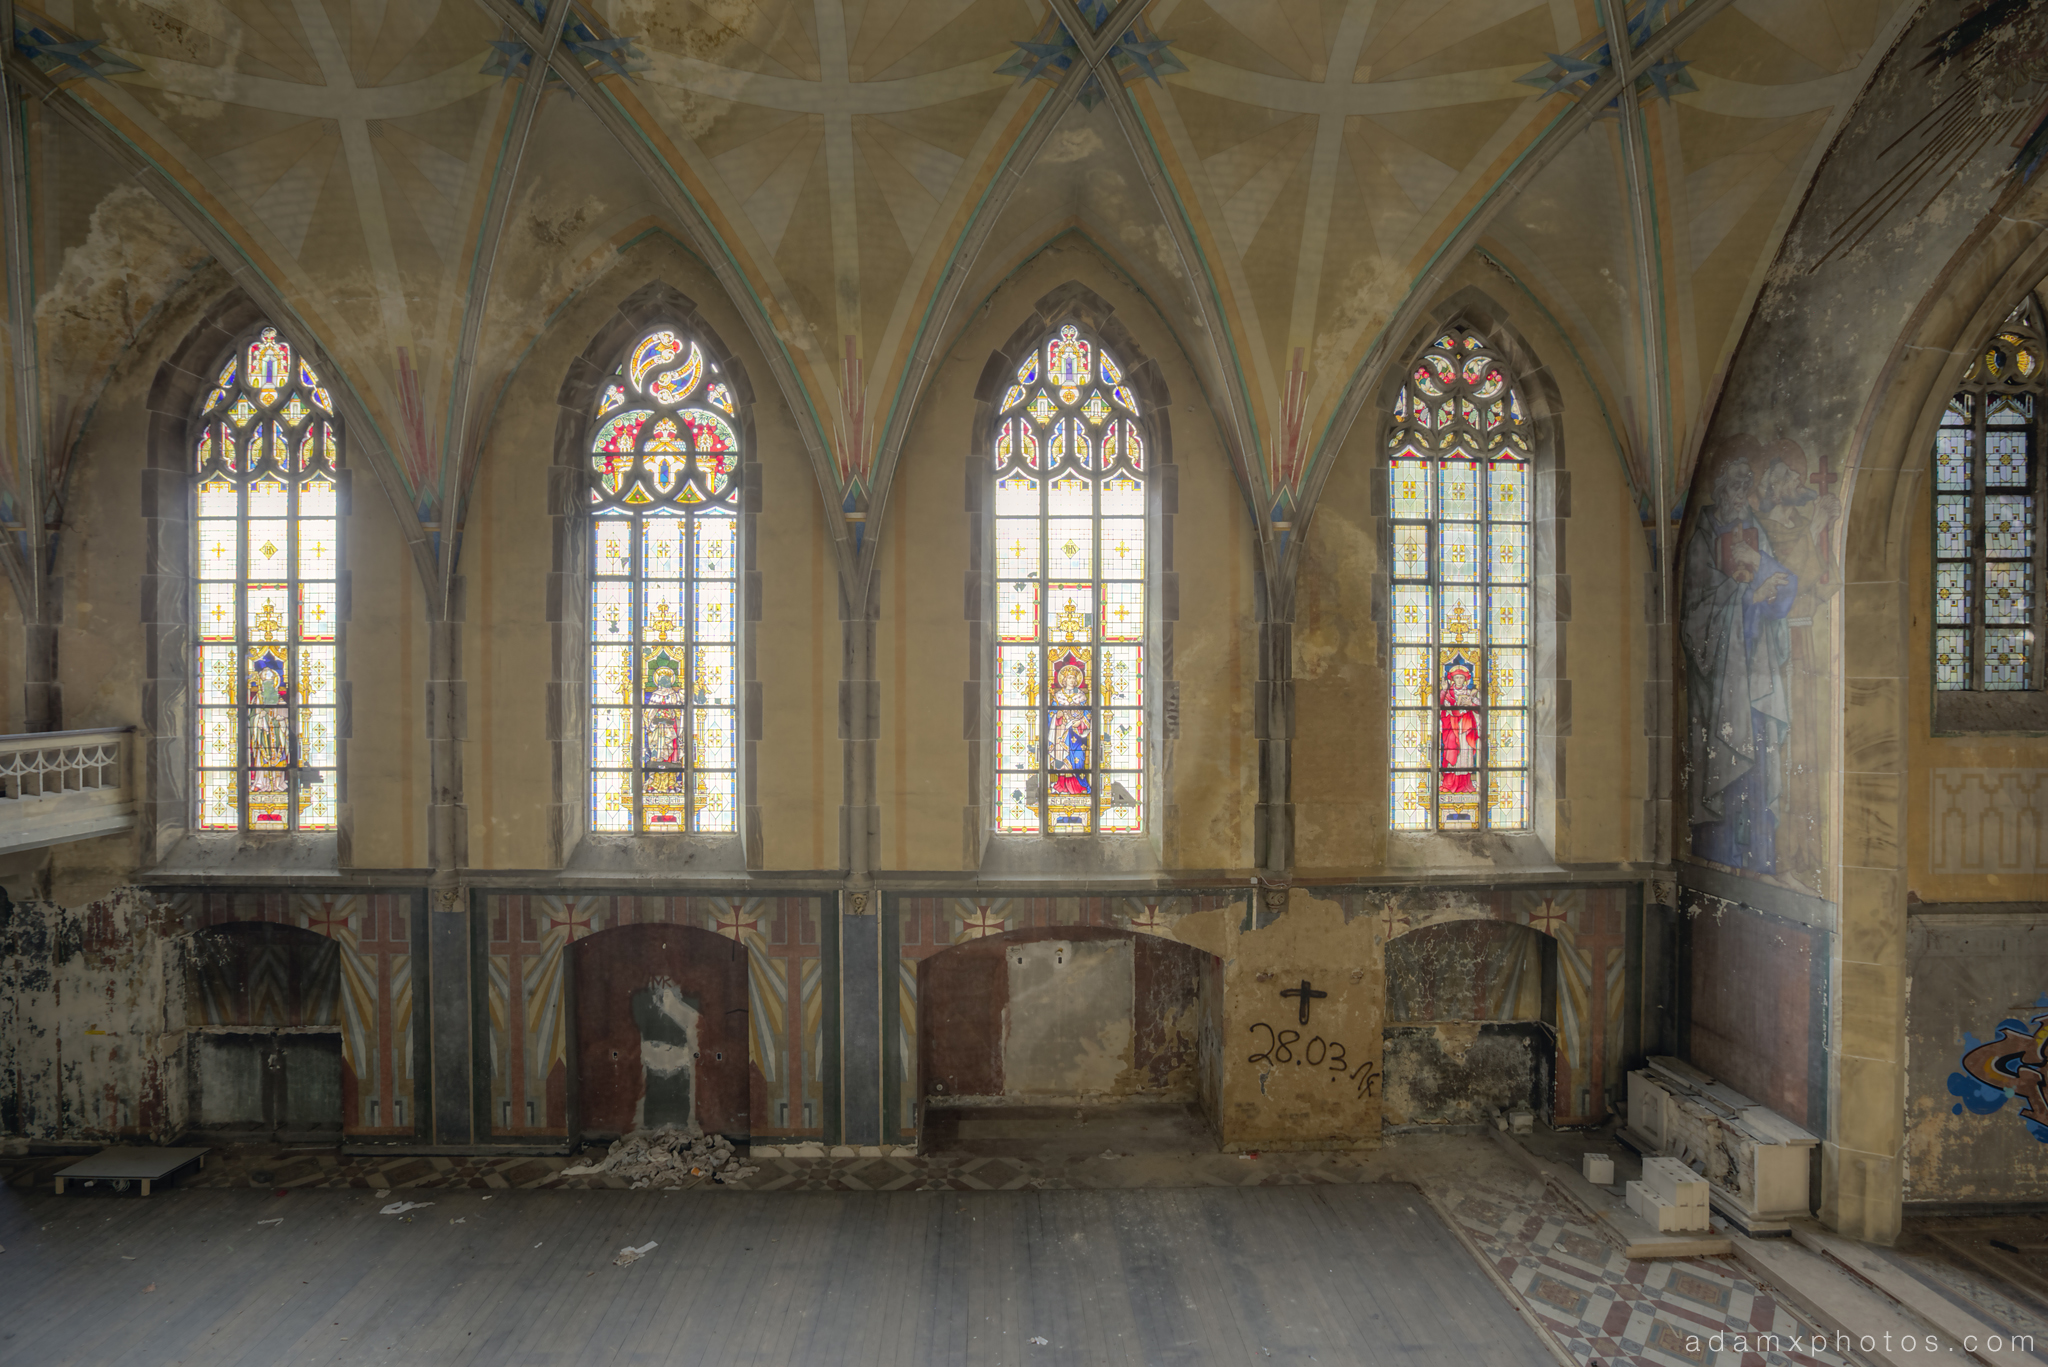 Side view stained glass windows ornate Adam X Urbex UE Urban Exploration Germany chapel church abandoned derelict unused empty disused decay decayed decaying grimy grime